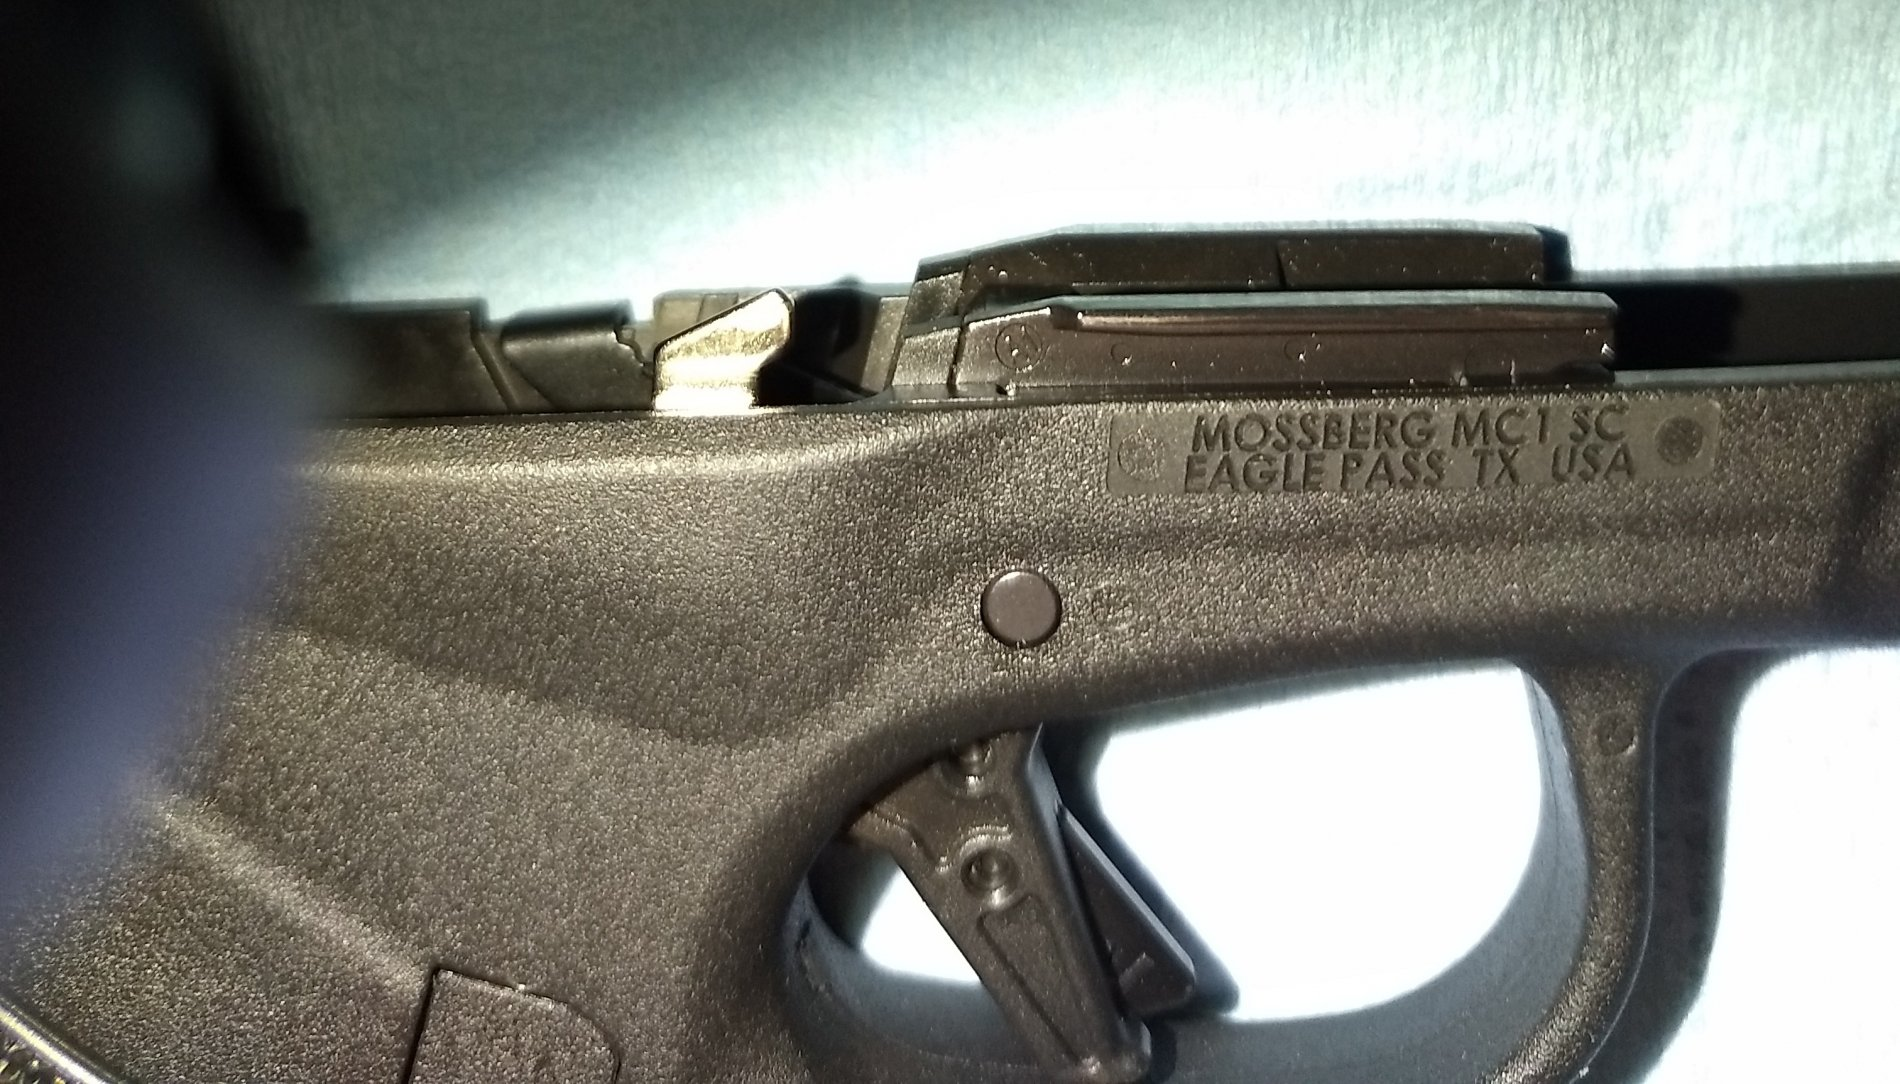 more on the Mossberg MC1sc